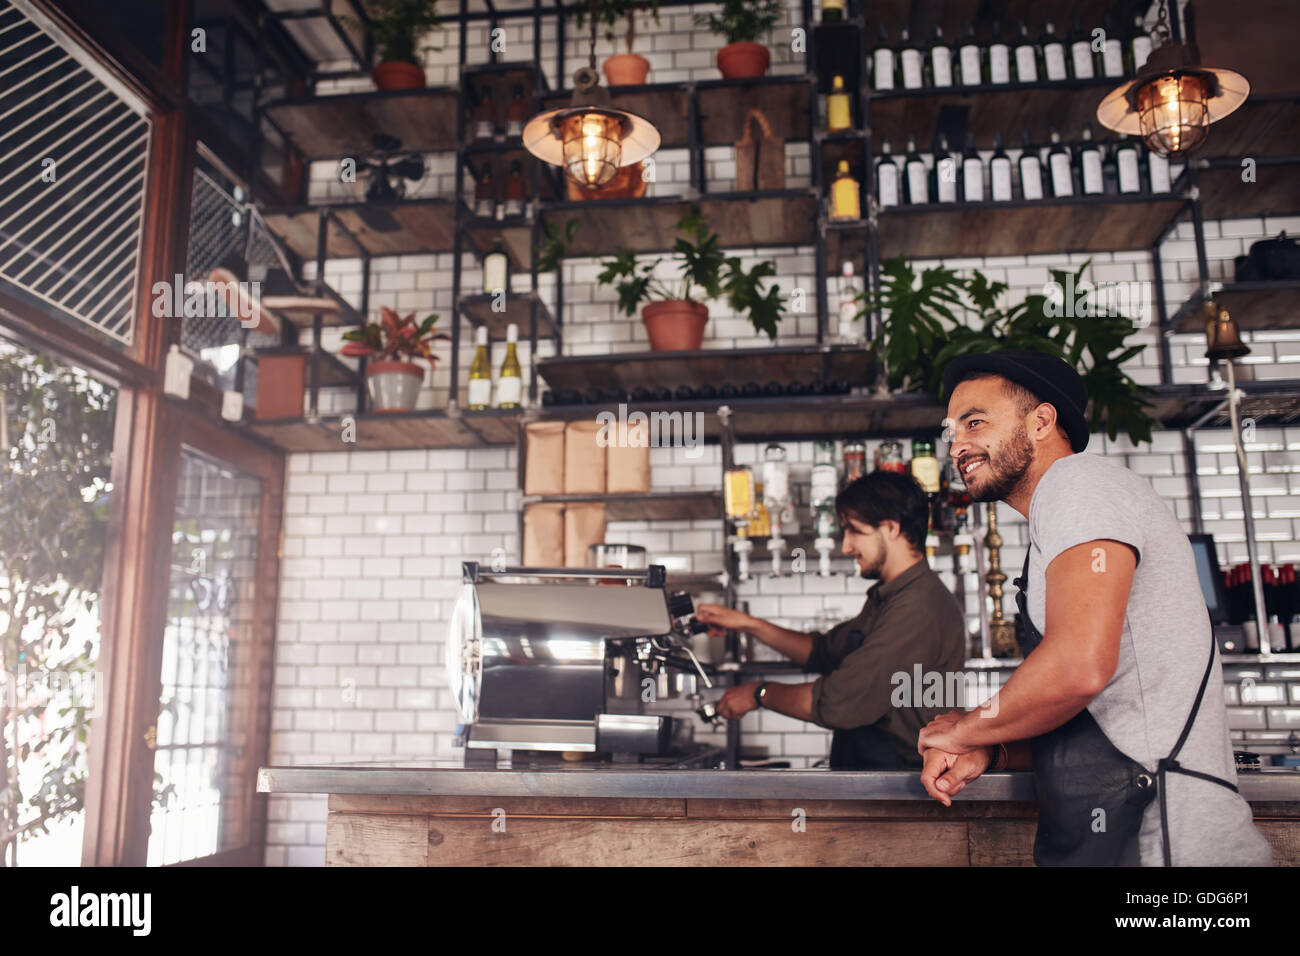 Coffee shop owner standing at the counter, with barista working in background. - Stock Image